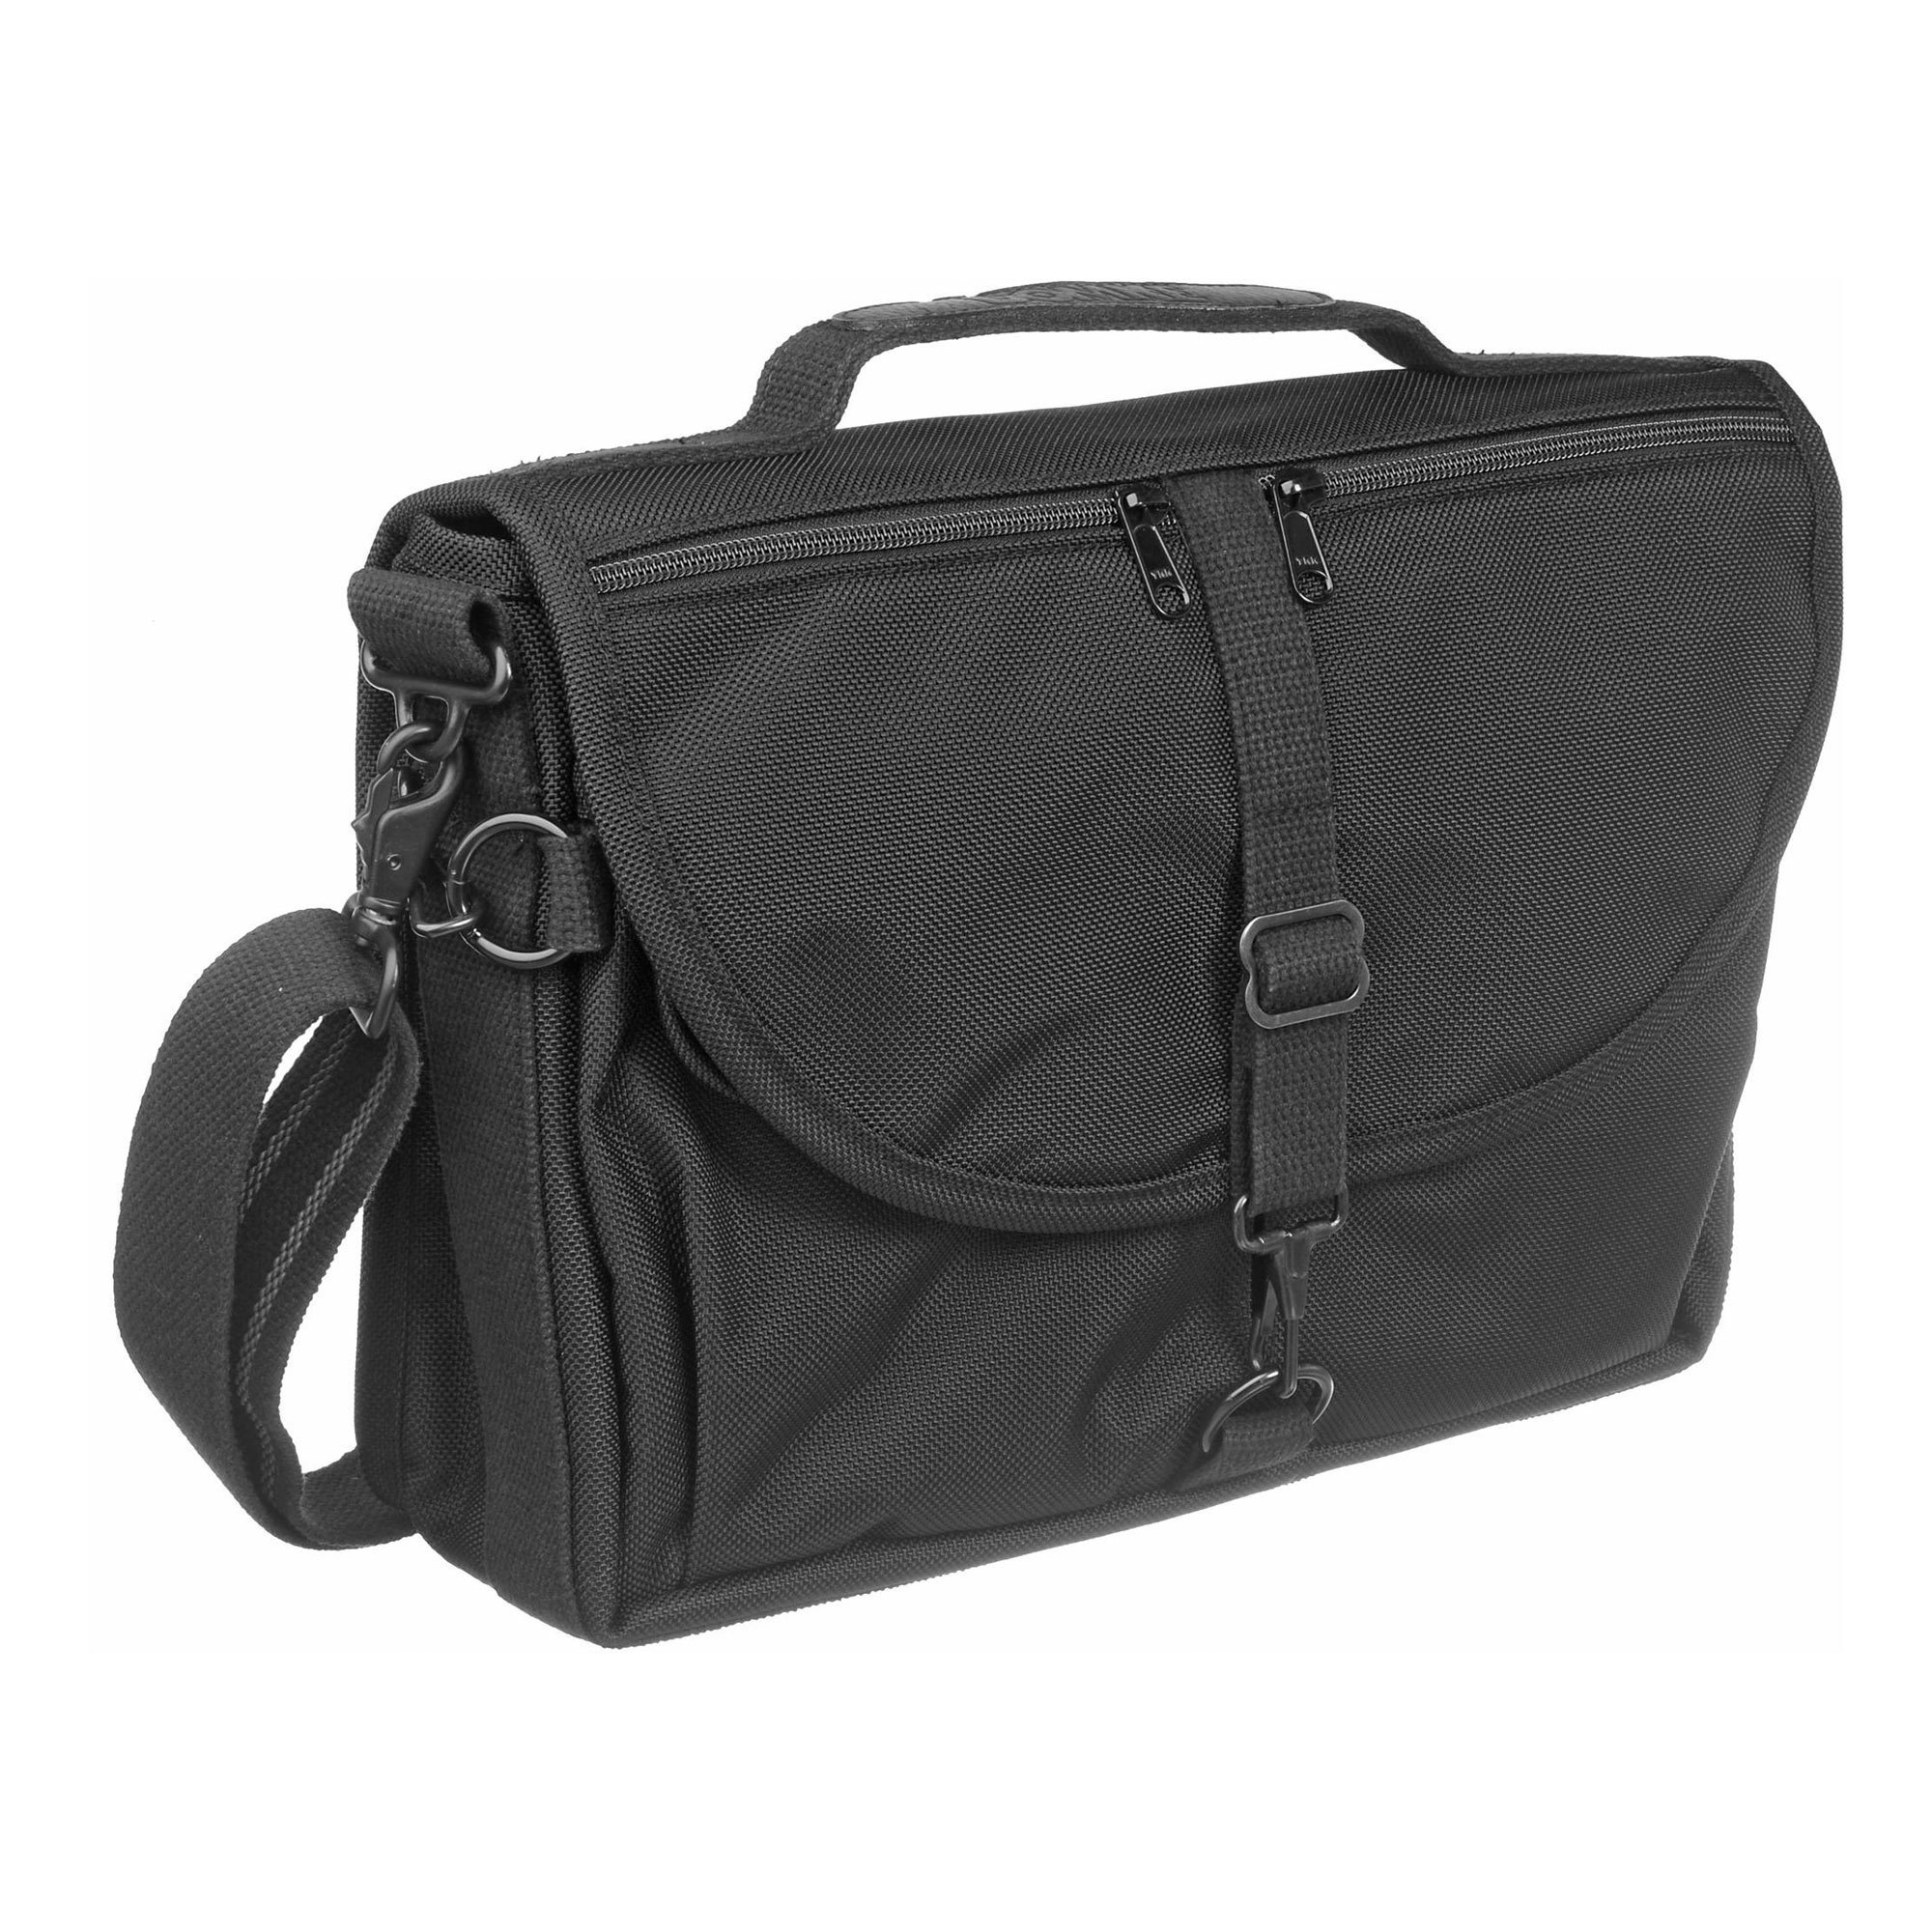 Domke 701-J83 J-803 Satchel (Black) by Domke